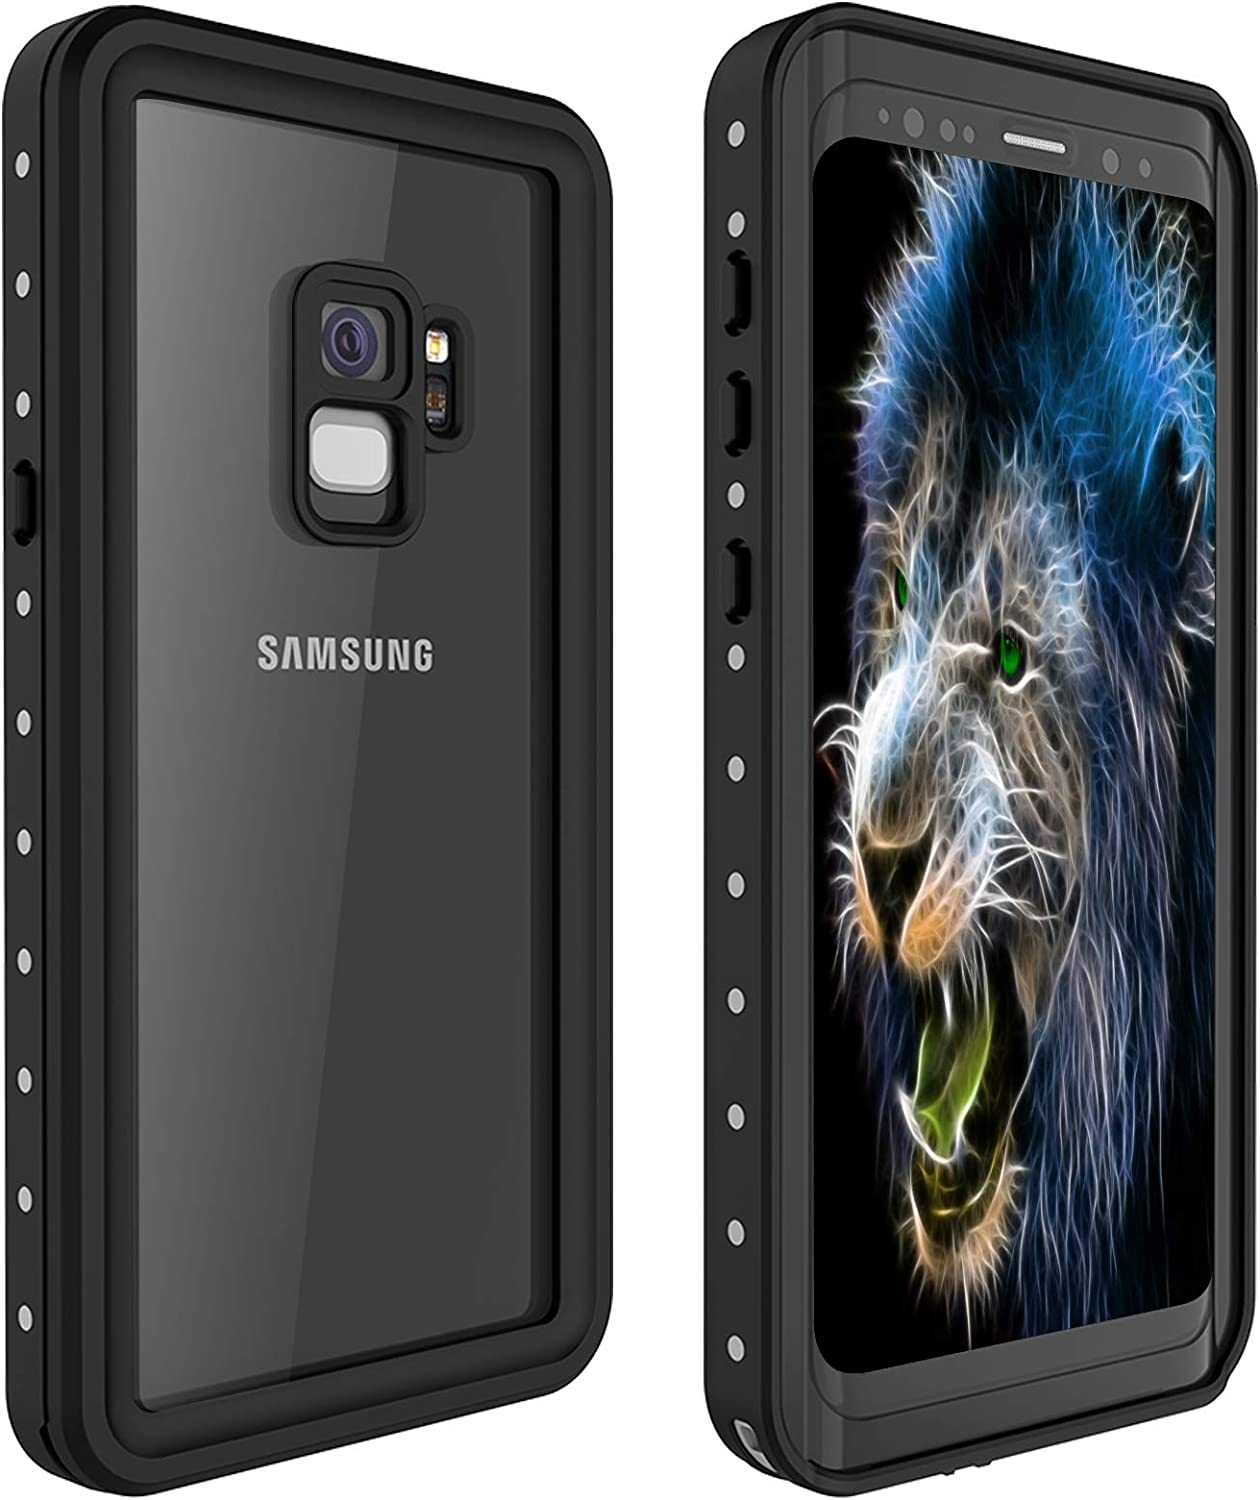 Galaxy S9 Plus Waterproof Case, itayak Waterproof Shockproof Dustproof Dirtproof Full Body Case Built in Screen Protector with Touch ID for Samsung Galaxy S9 Plus (Black)